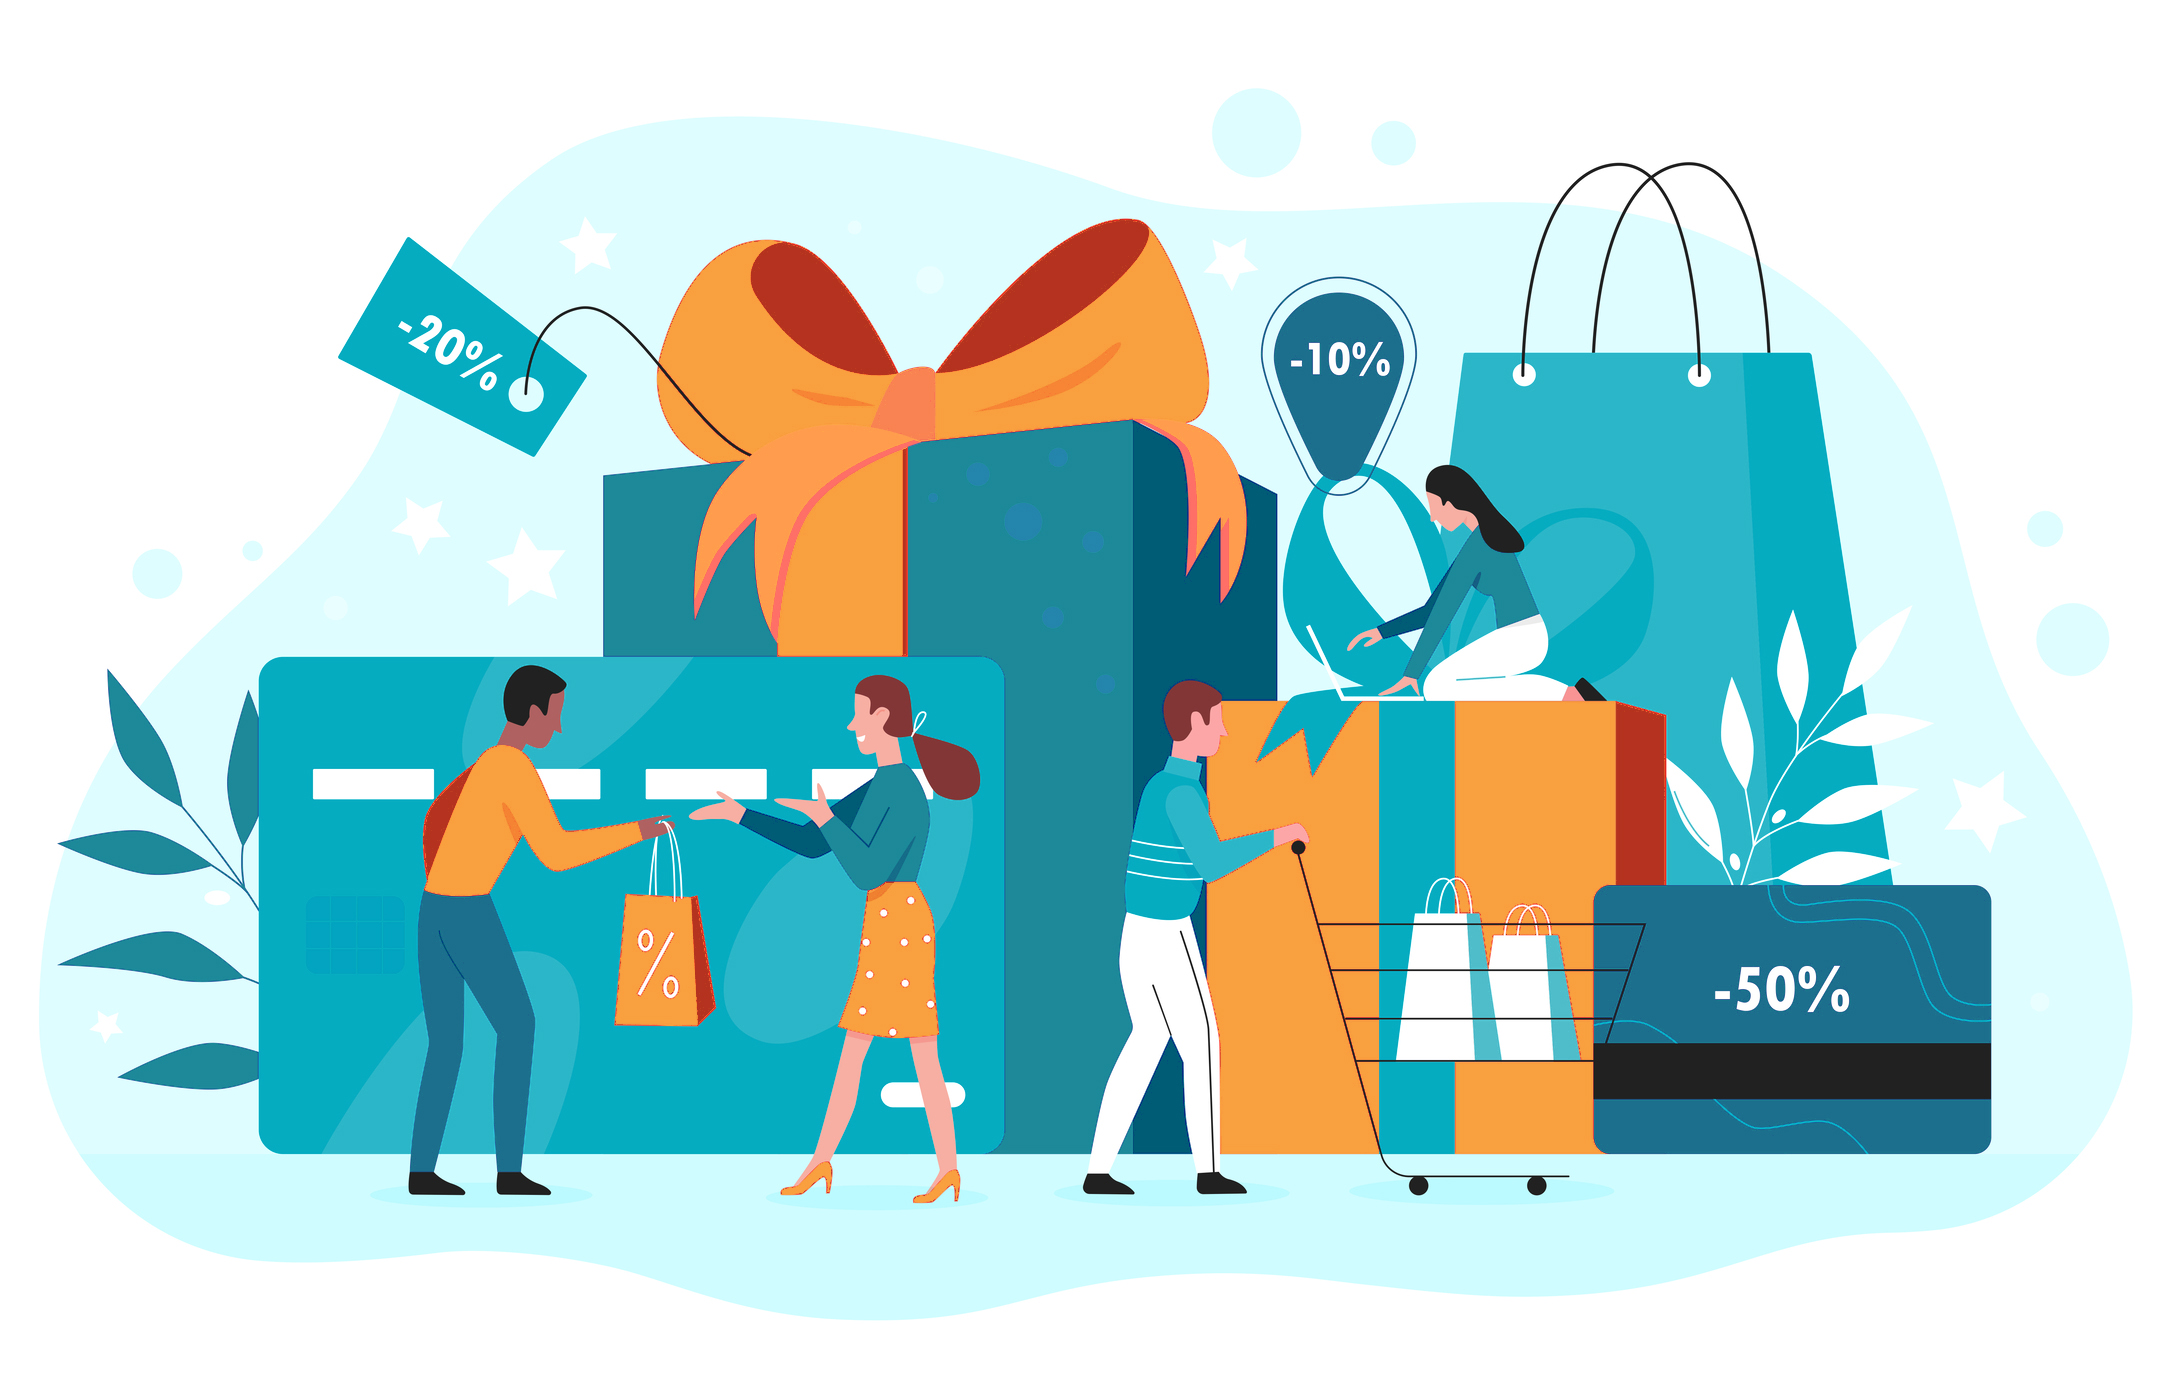 gift and loyalty cards represent savings